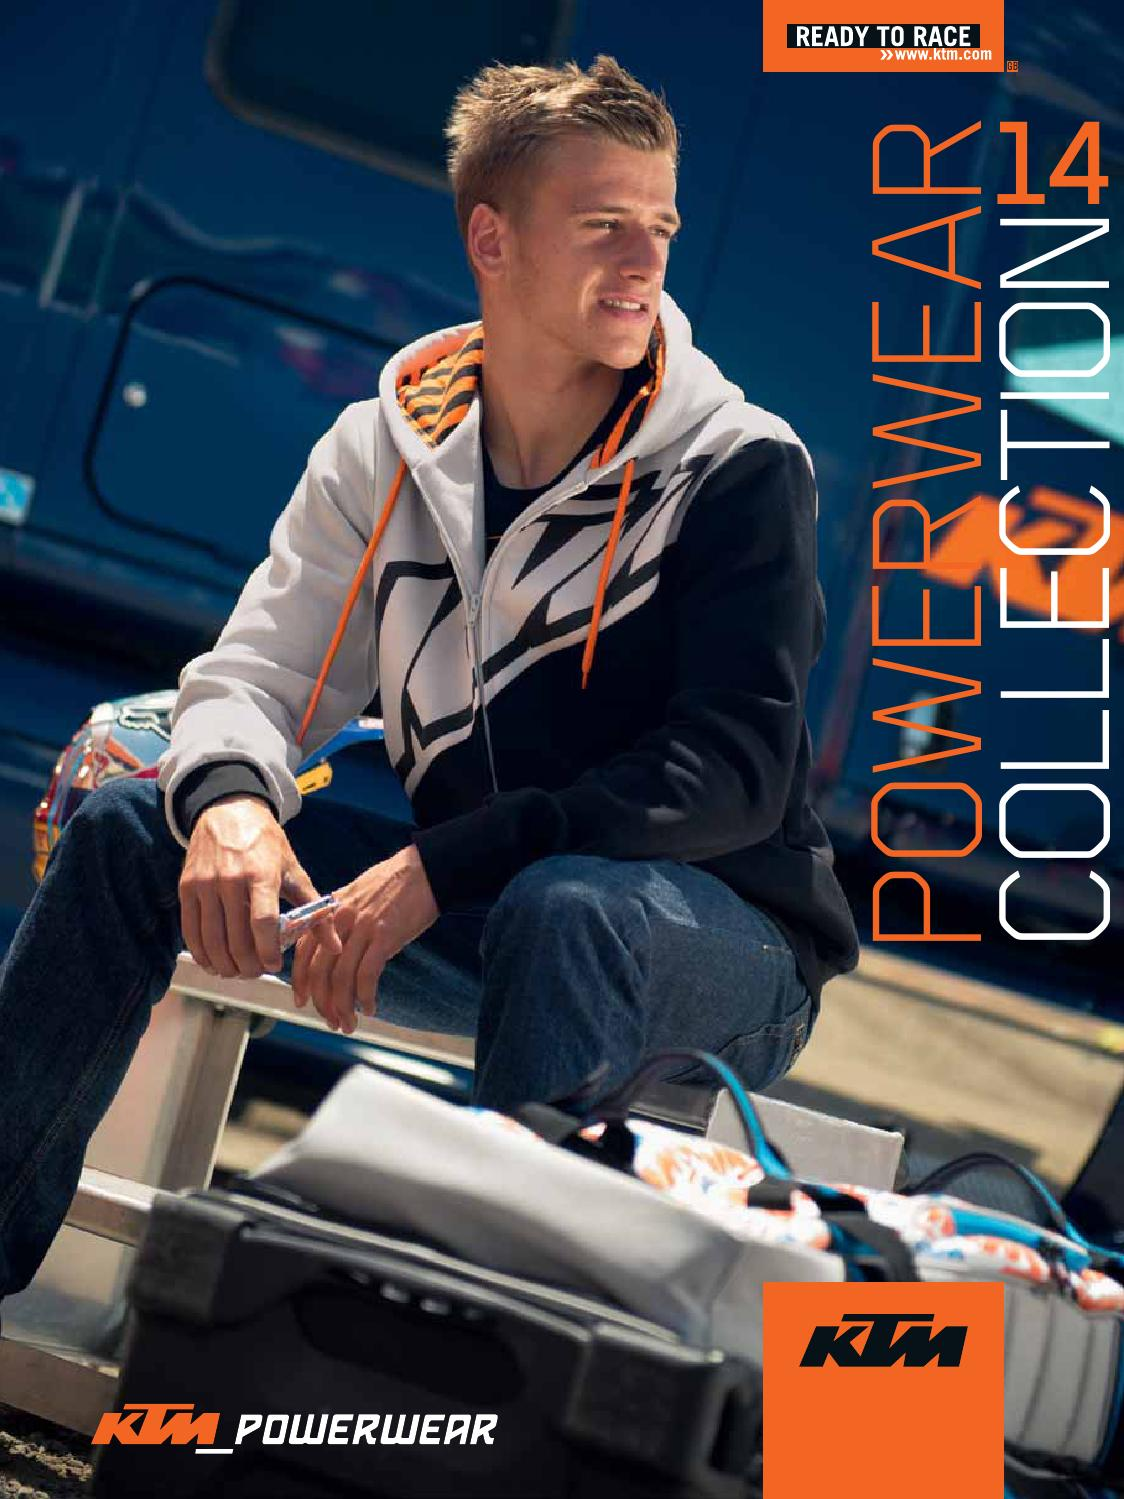 Ktm Powerwear Catalogue 2014 English By Ktm Group Issuu